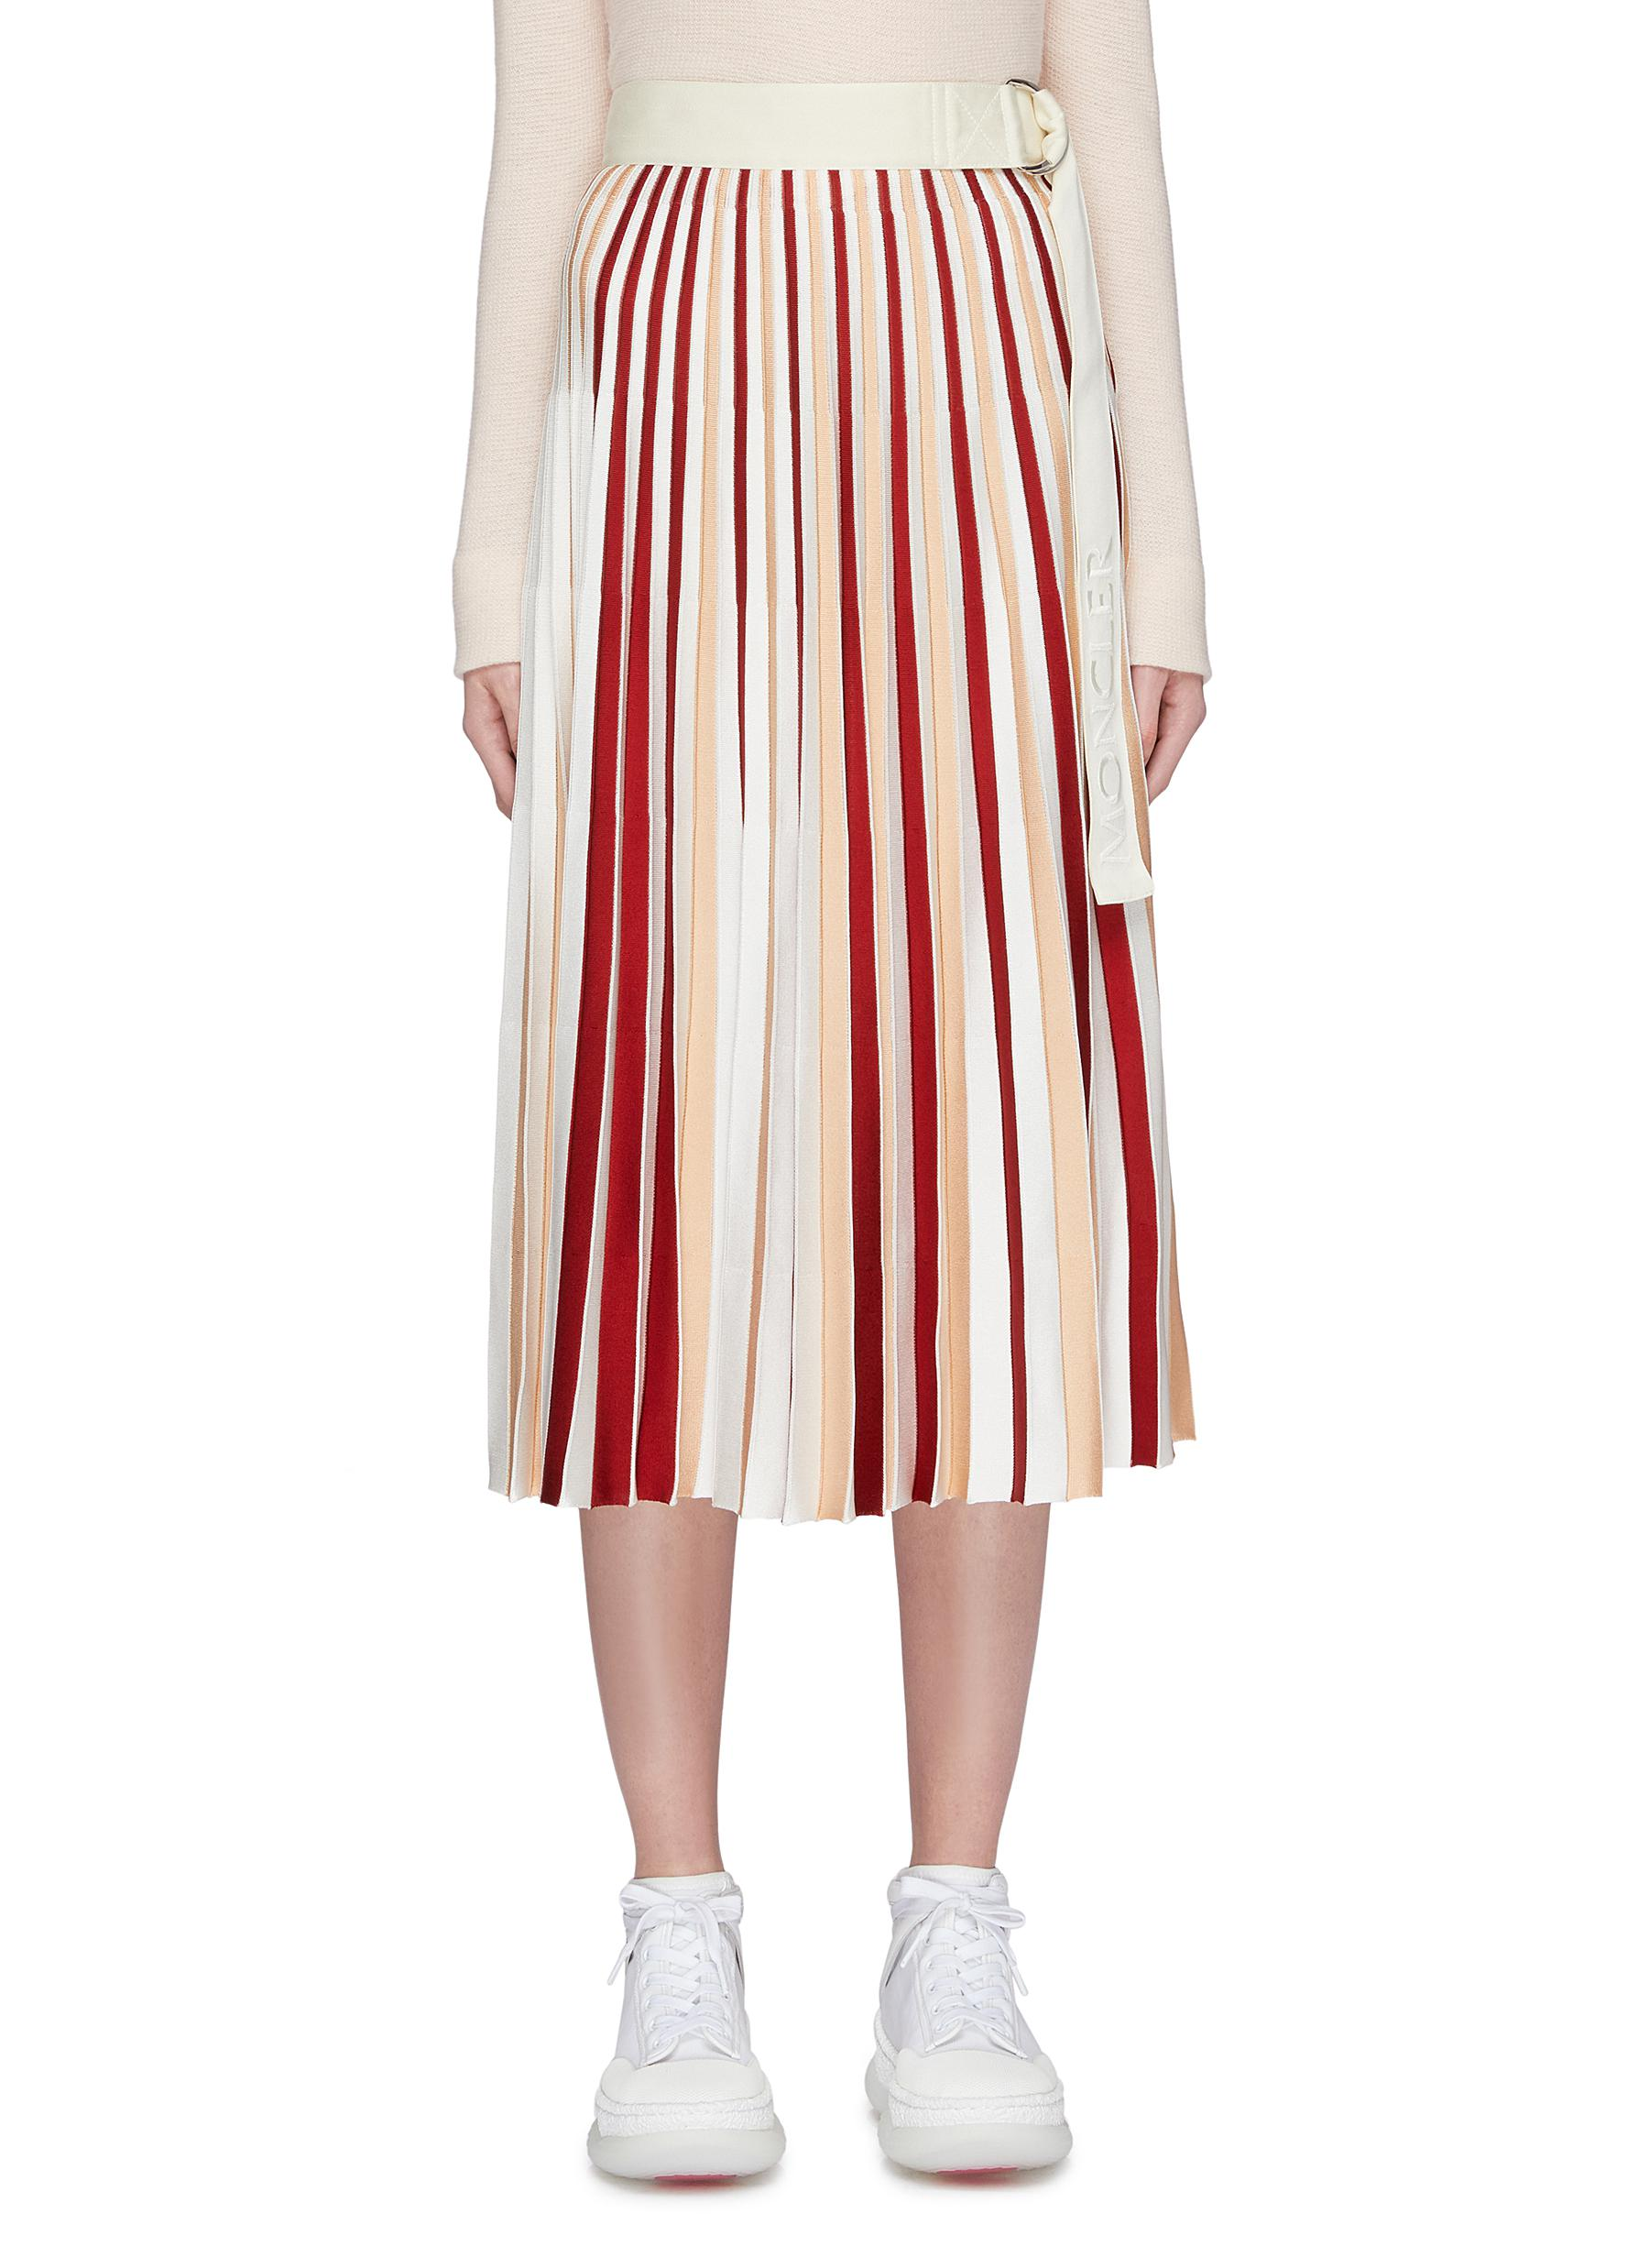 x 1952 belted contrast stripe pleated knit skirt by Moncler Genius